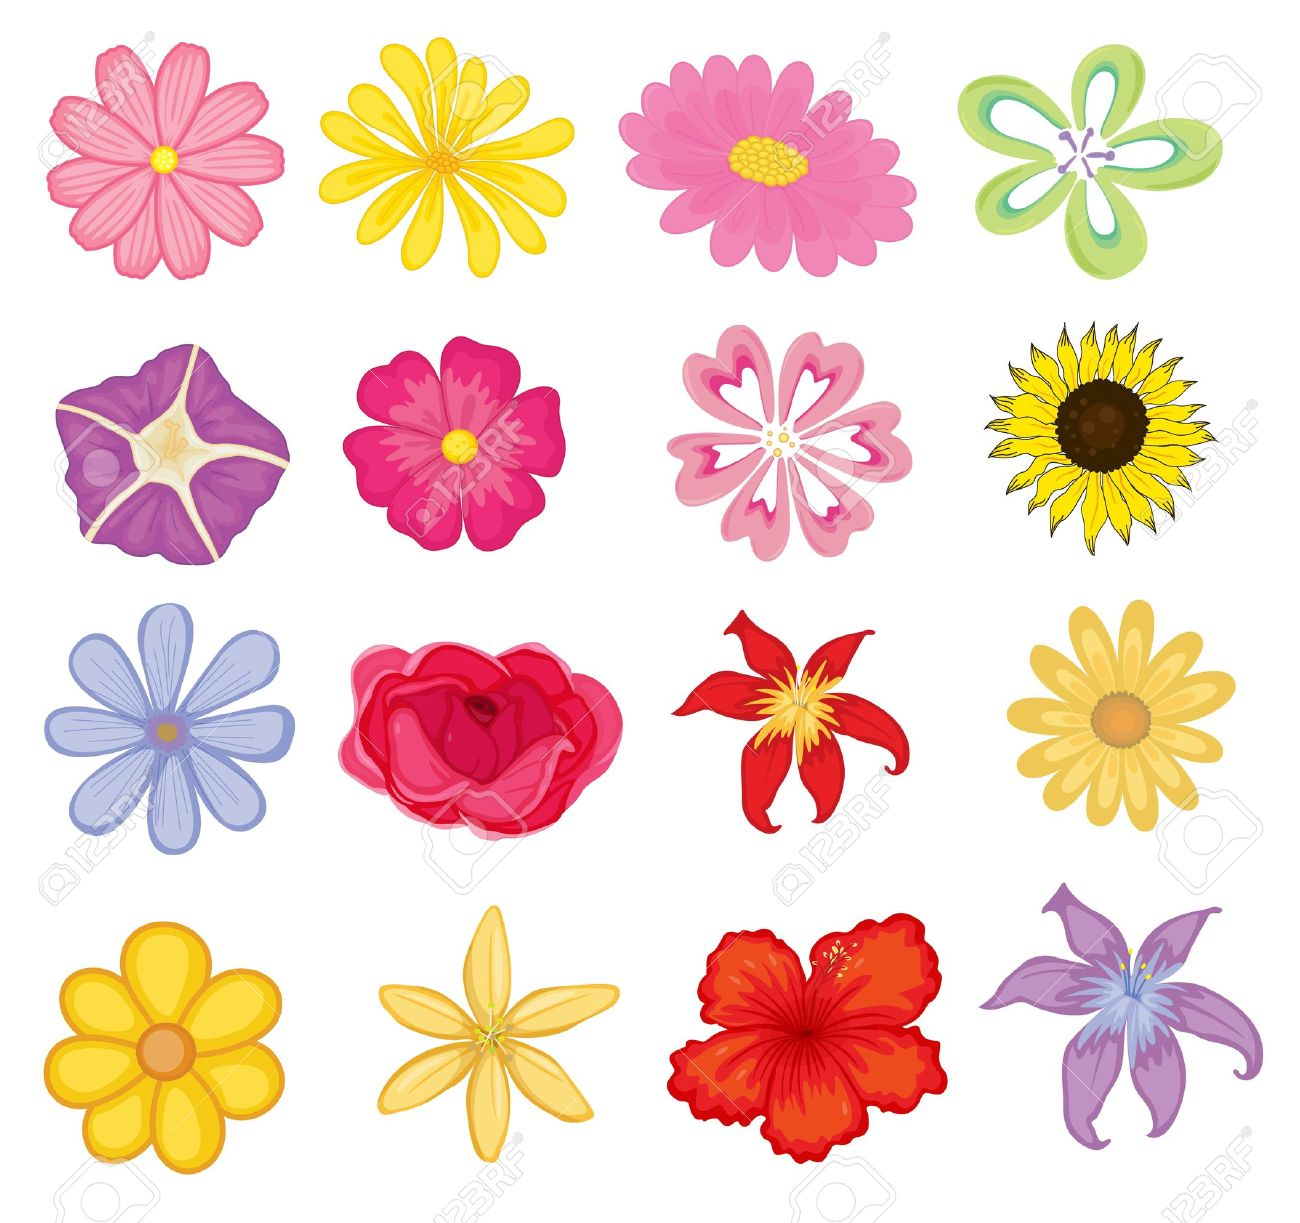 Illustrated set of colorful flower objects royalty free cliparts illustrated set of colorful flower objects stock vector 13268594 izmirmasajfo